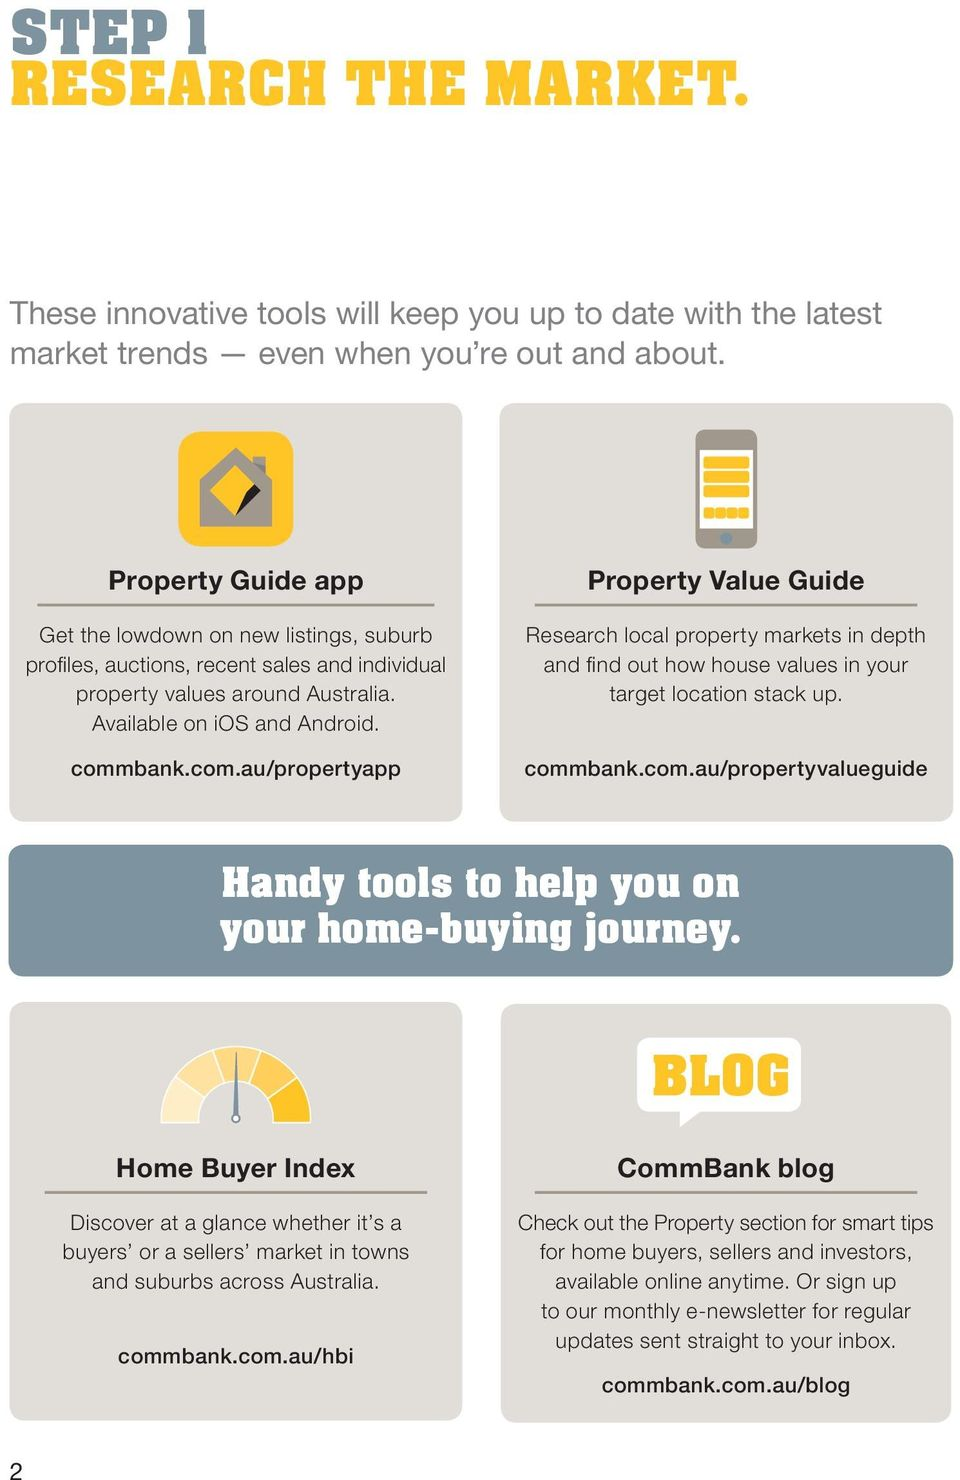 bank.com.au/propertyapp Property Value Guide Research local property markets in depth and find out how house values in your target location stack up. commbank.com.au/propertyvalueguide Handy tools to help you on your home-buying journey.